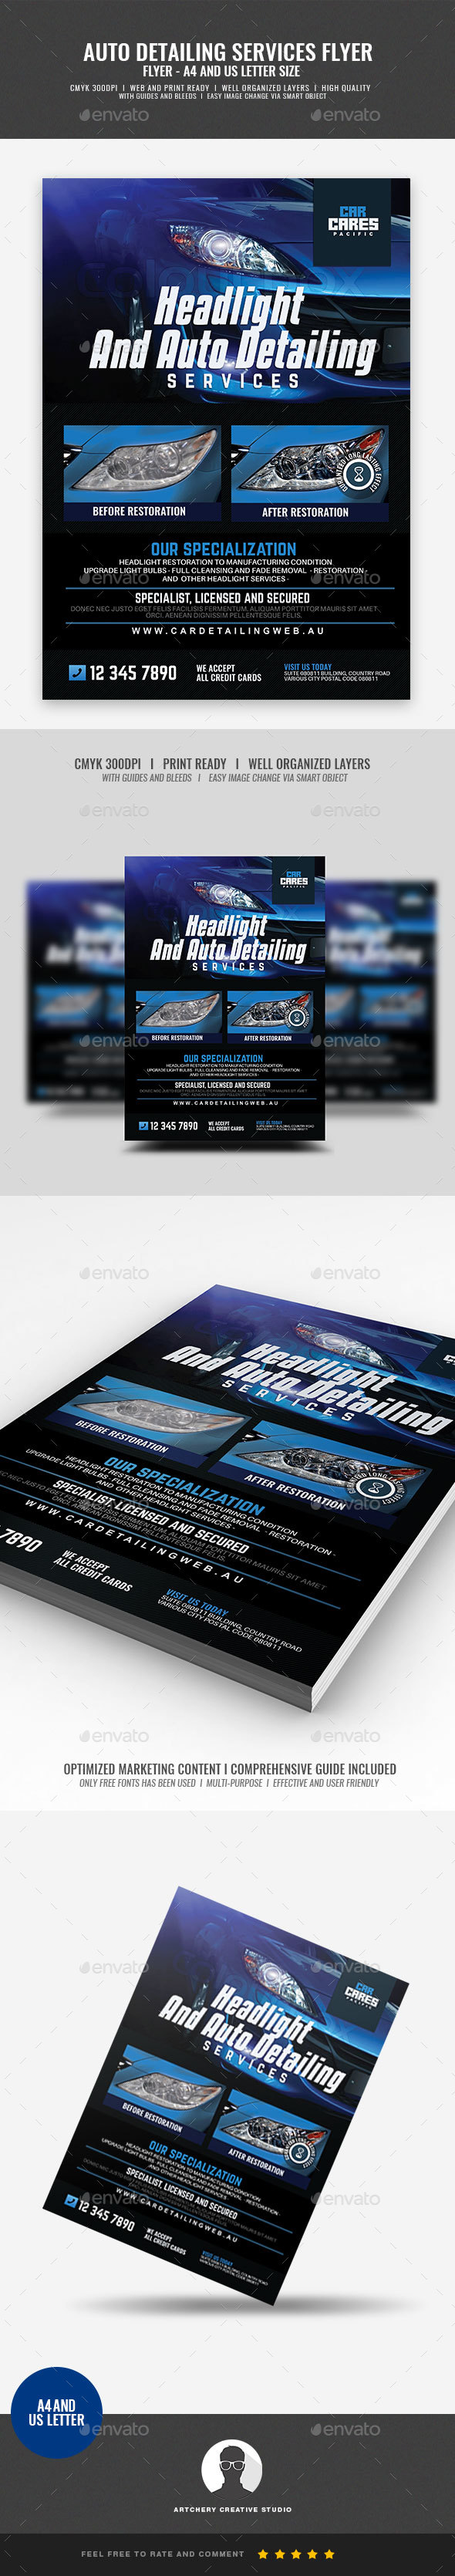 Headlight Restoration and Auto Detailing Flyer - Corporate Flyers